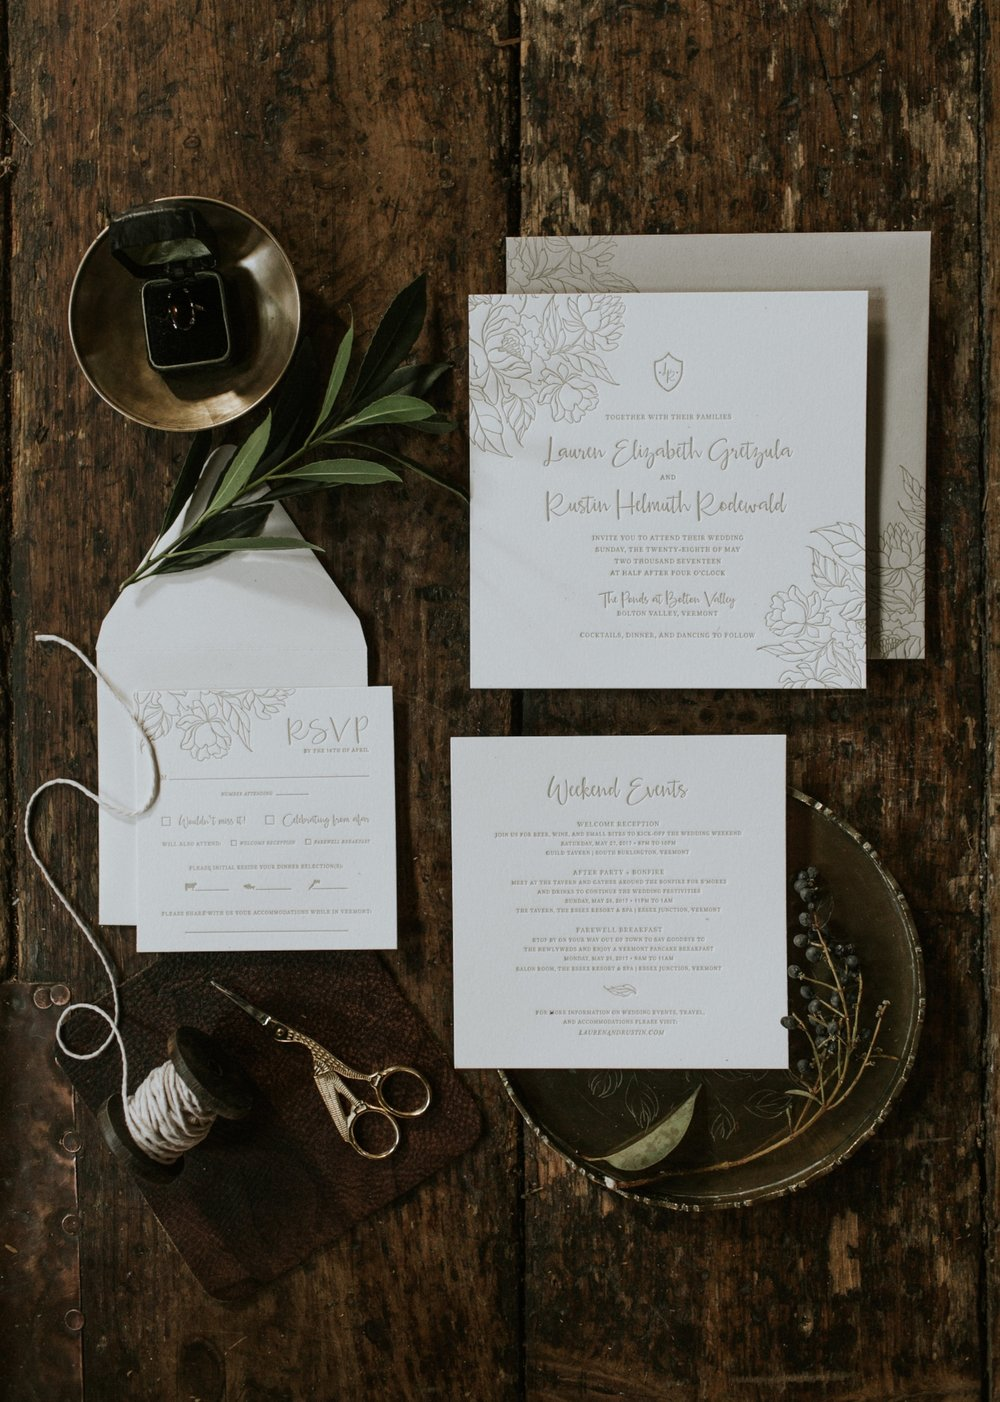 Edera Jewelry Blog: Bohemian Winter Wedding Inspiration in Berkshires